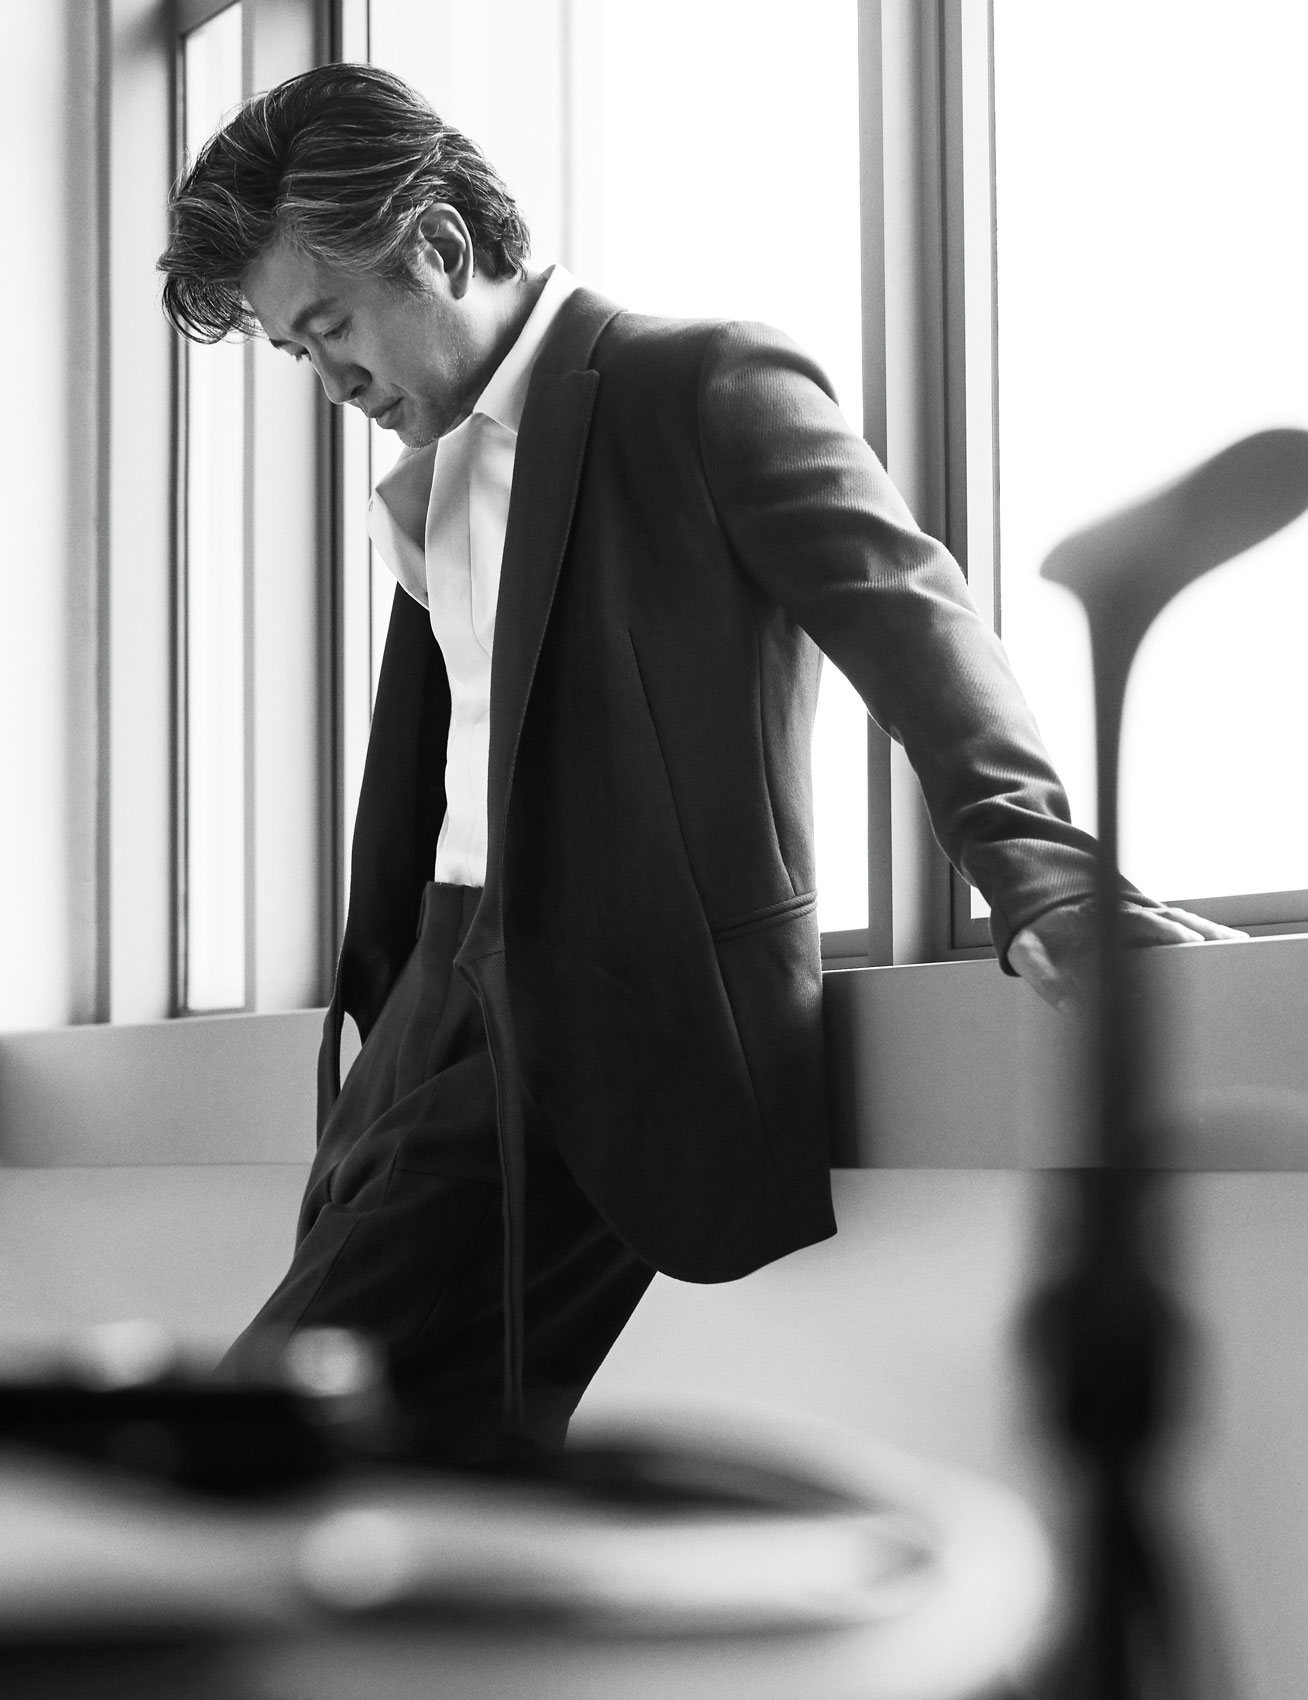 Adrian Pang for AUGUSTMAN, wearing Ermenegildo Zegna Couture. Photo: Wee Khim; Styled by Felix Woei